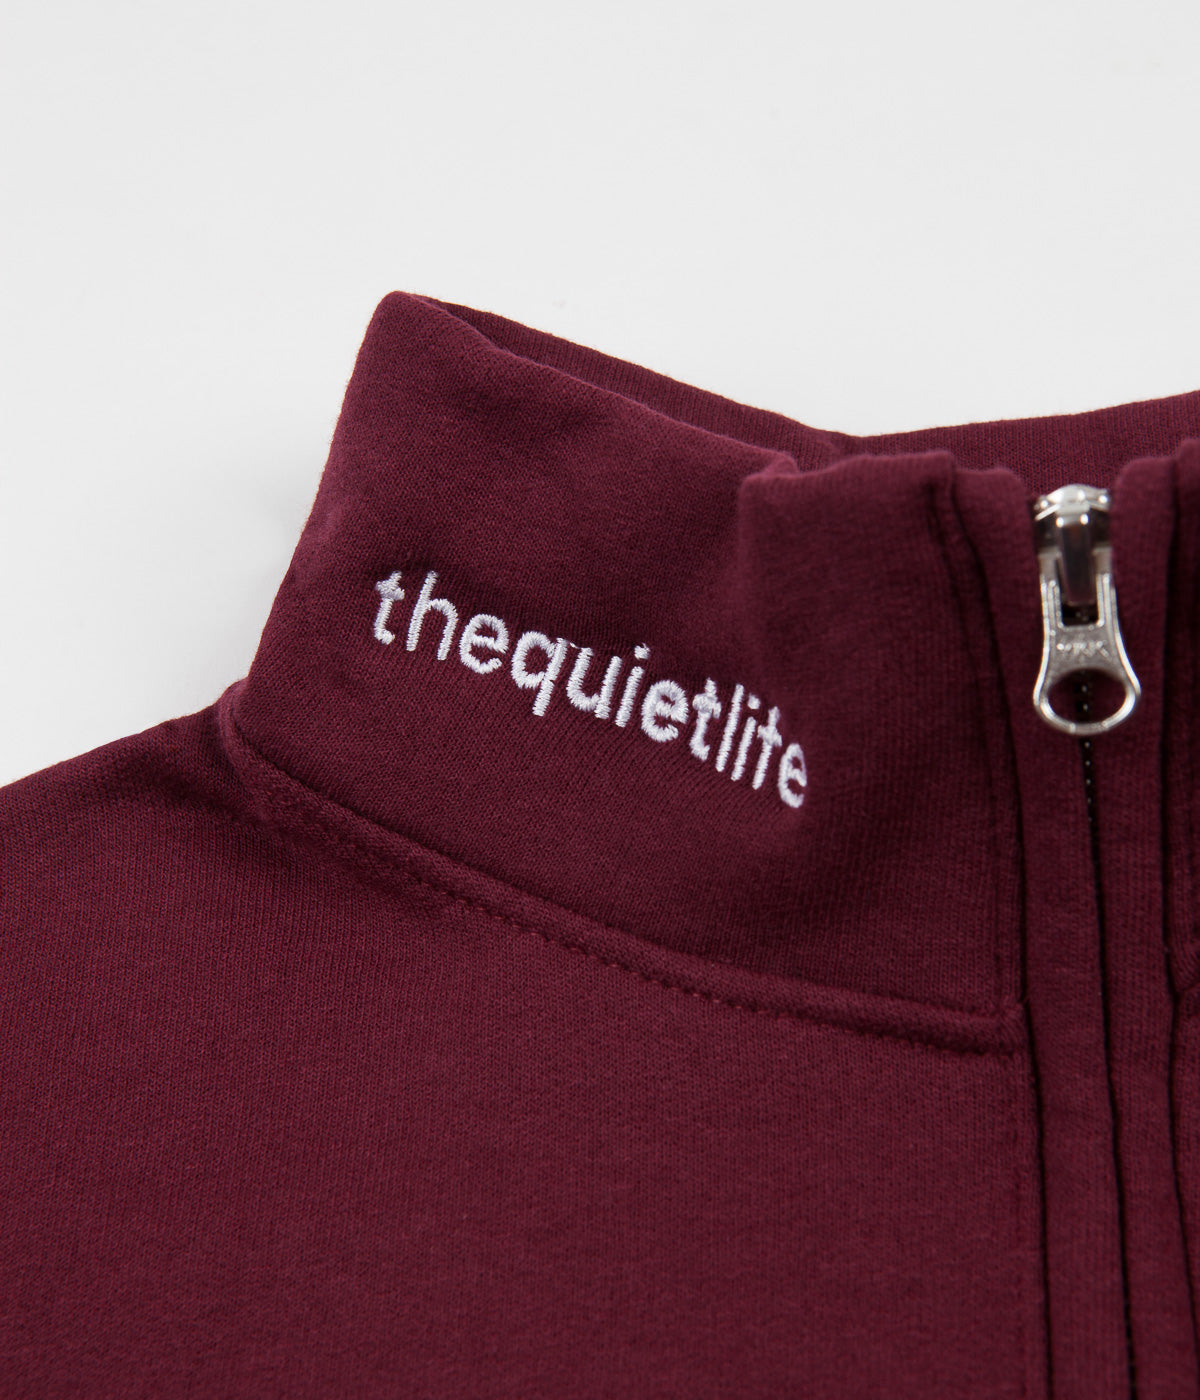 The Quiet Life Shhh 1/4 Zip Sweatshirt - Burgundy